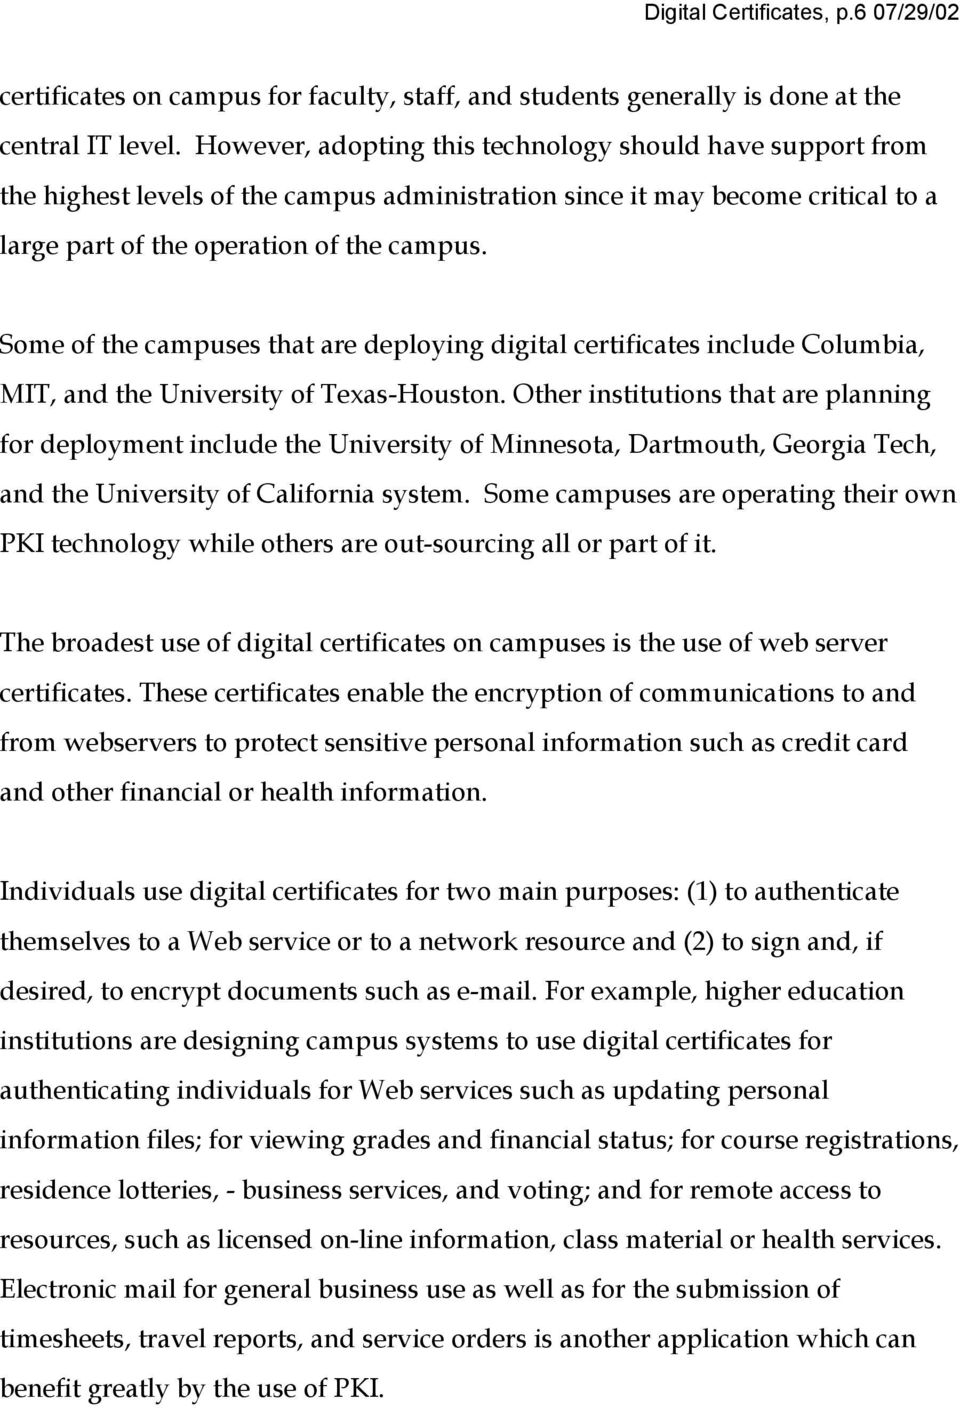 Some of the campuses that are deploying digital certificates include Columbia, MIT, and the University of Texas-Houston.